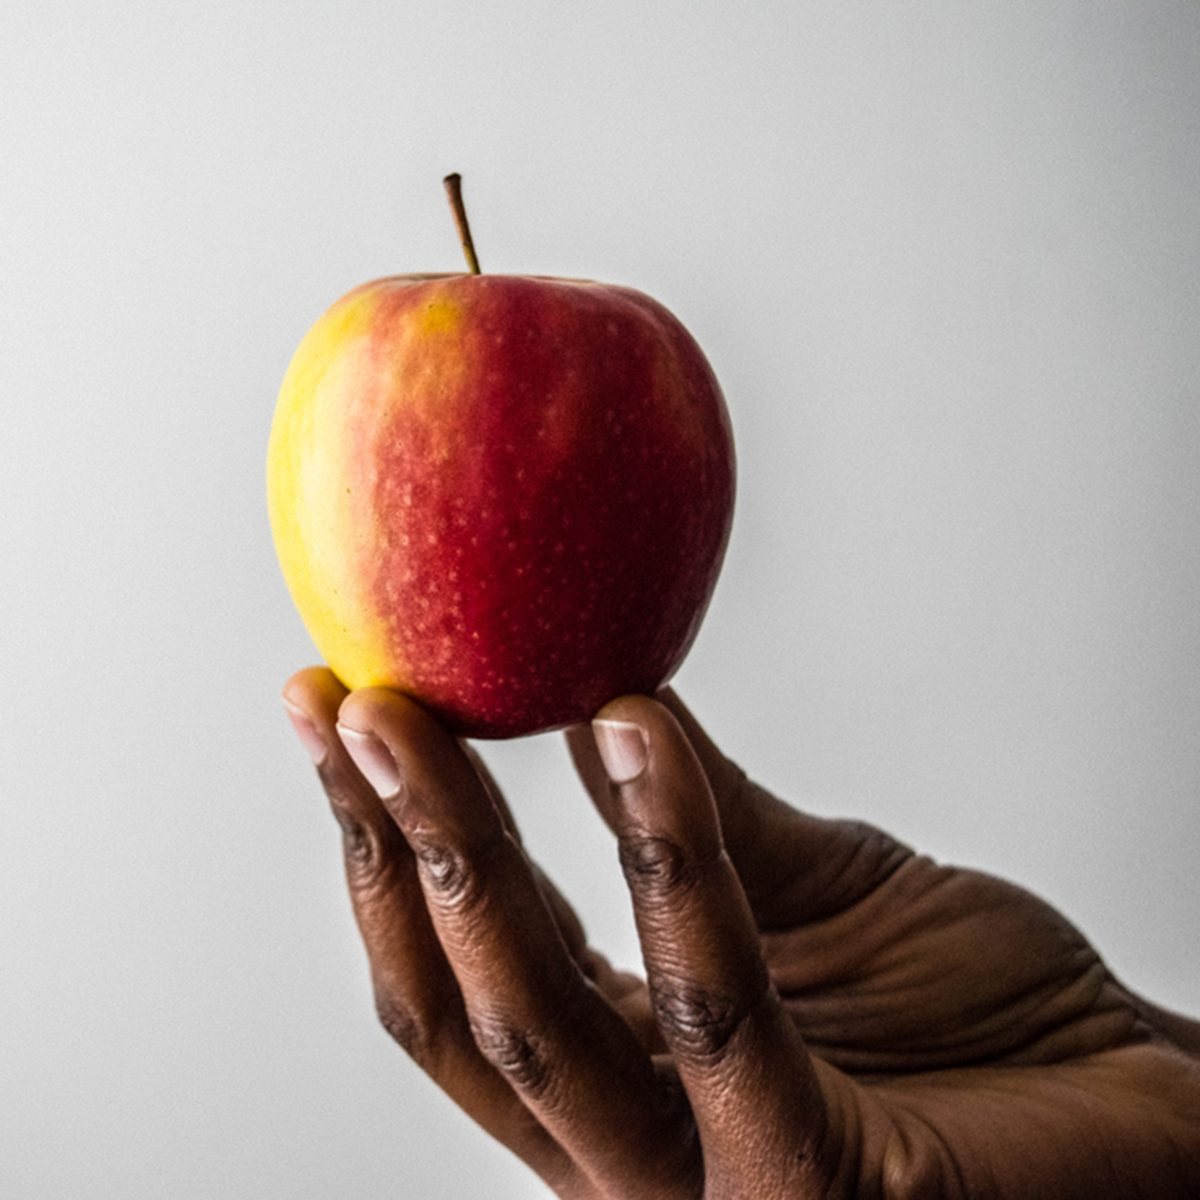 African American Woman's hand and fingers holding red pink lady apple fruit isolated on a white background in fresh and juicy color.